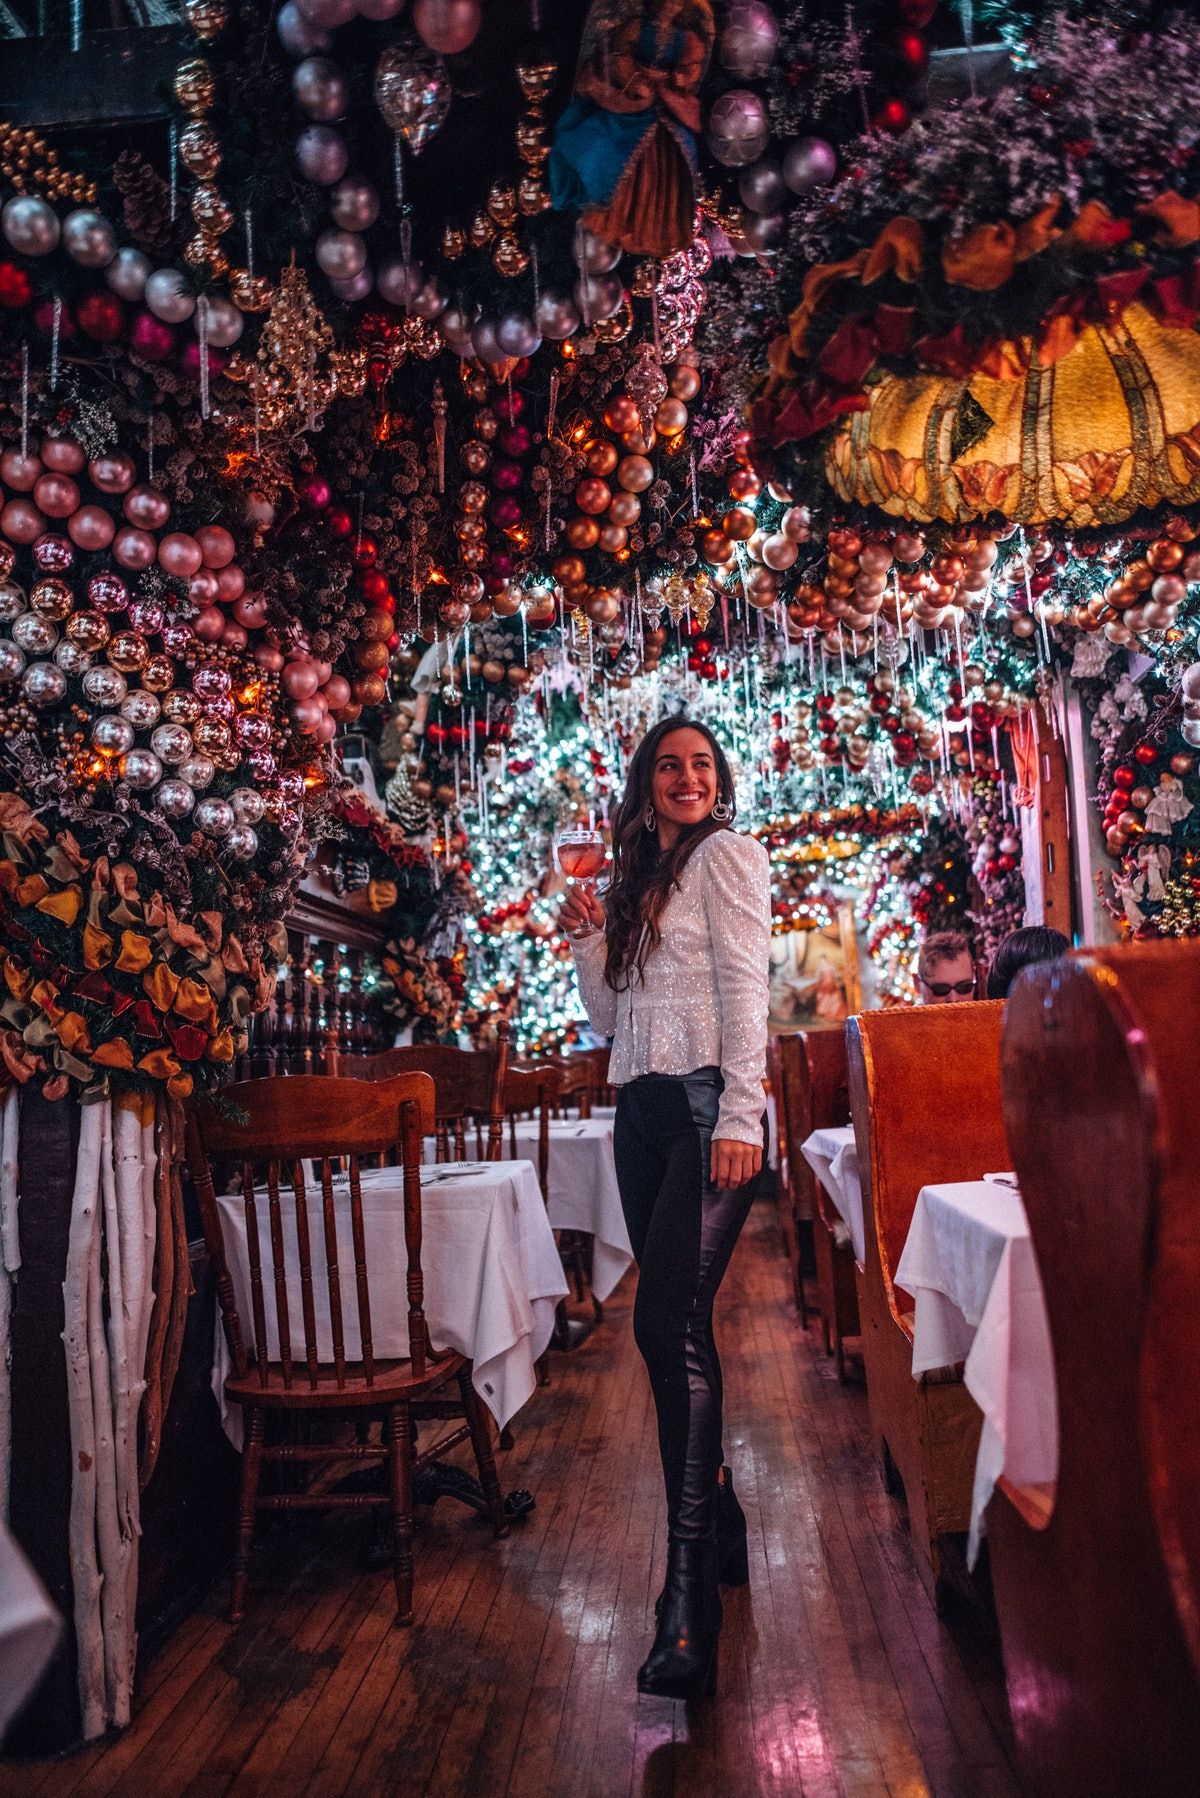 A travel blogger poses in Rolf's in New York City with a drink during the holidays.